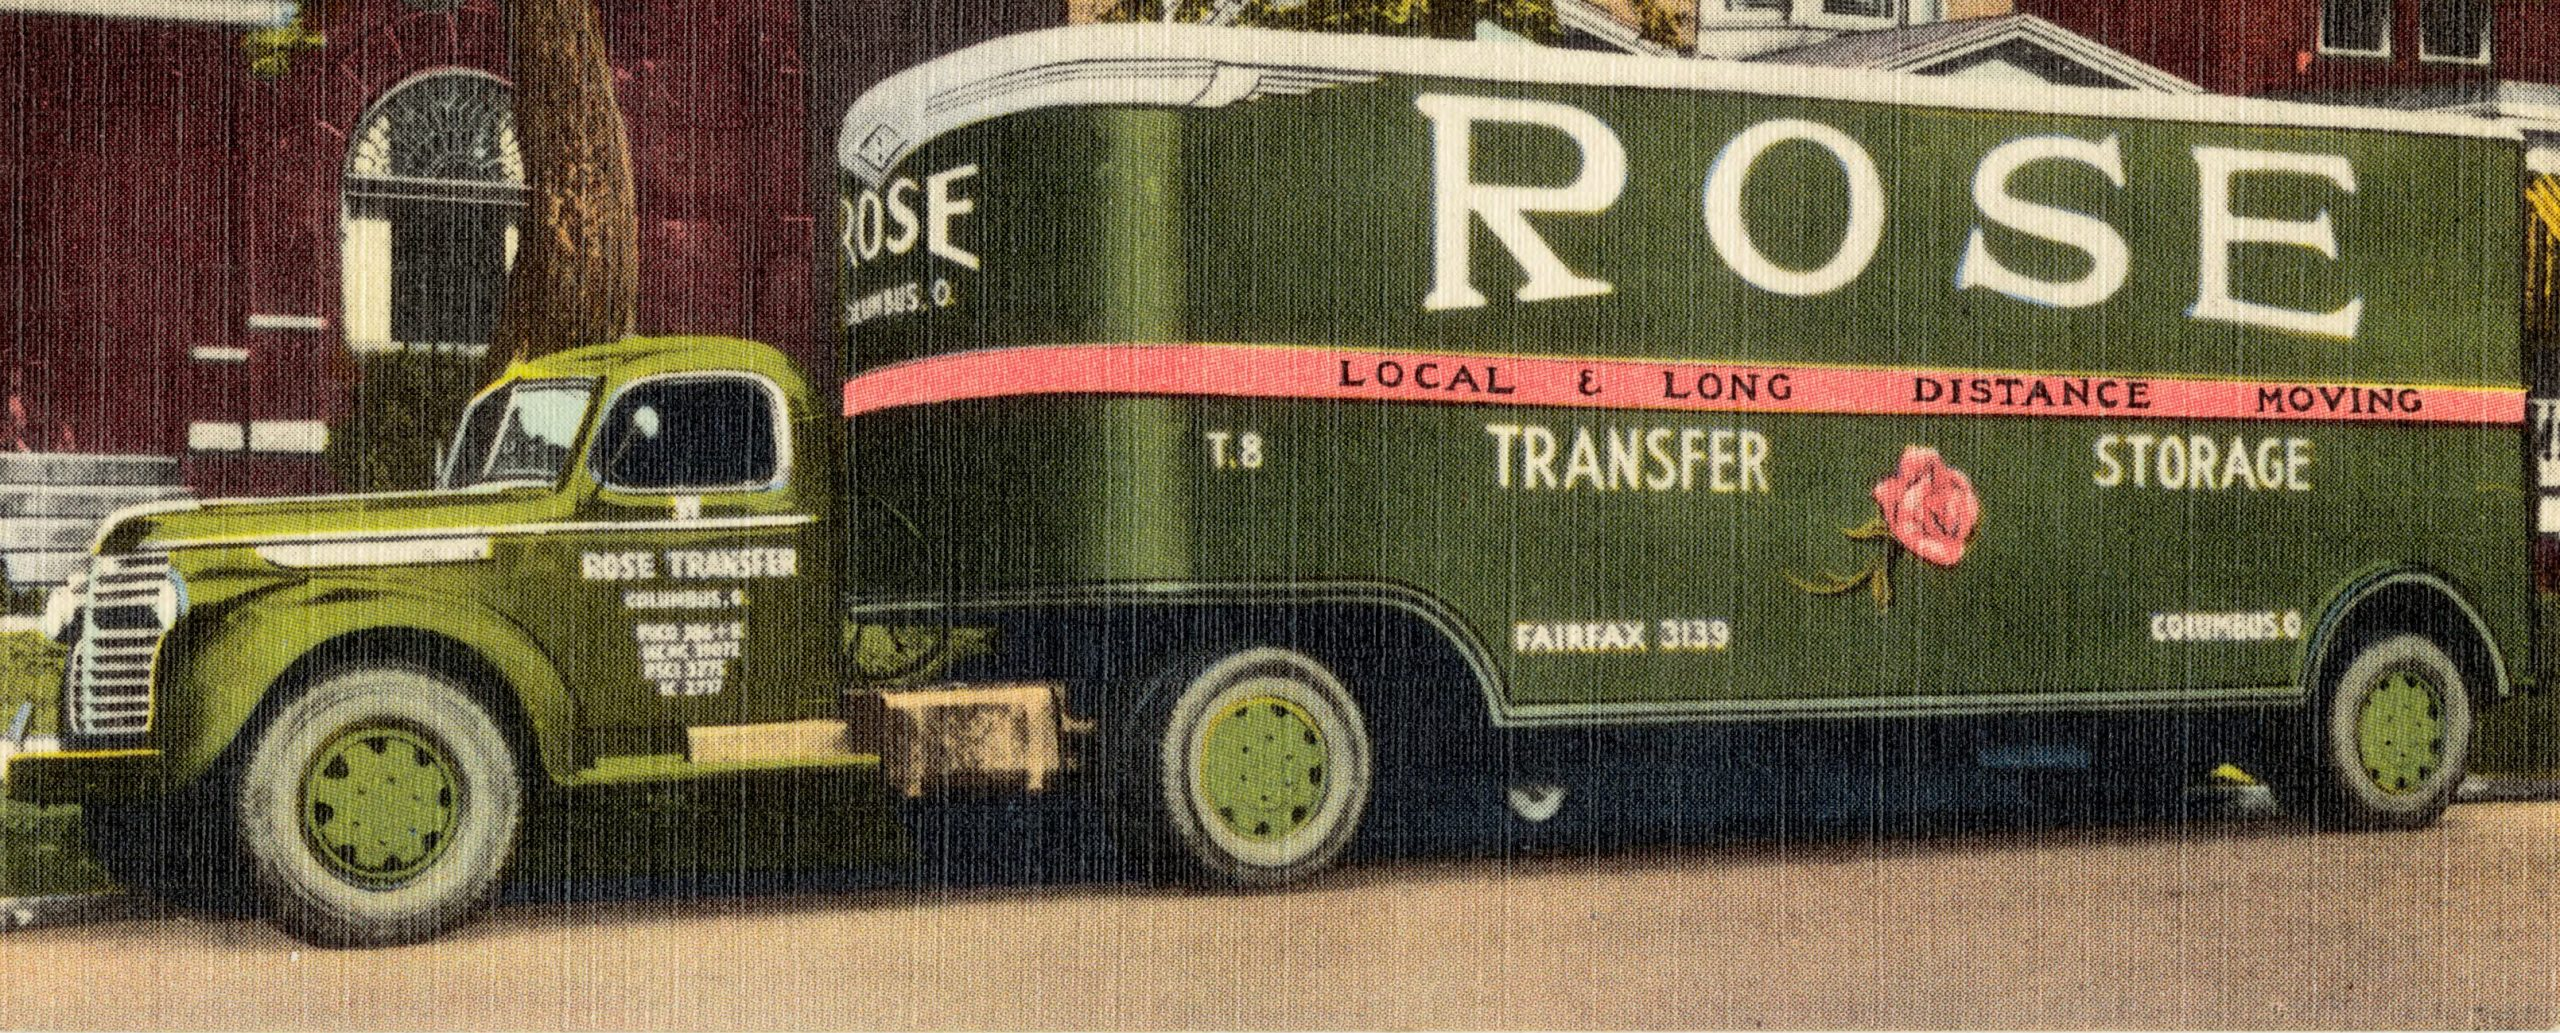 old drawing of Rose Transfer & Storage truck